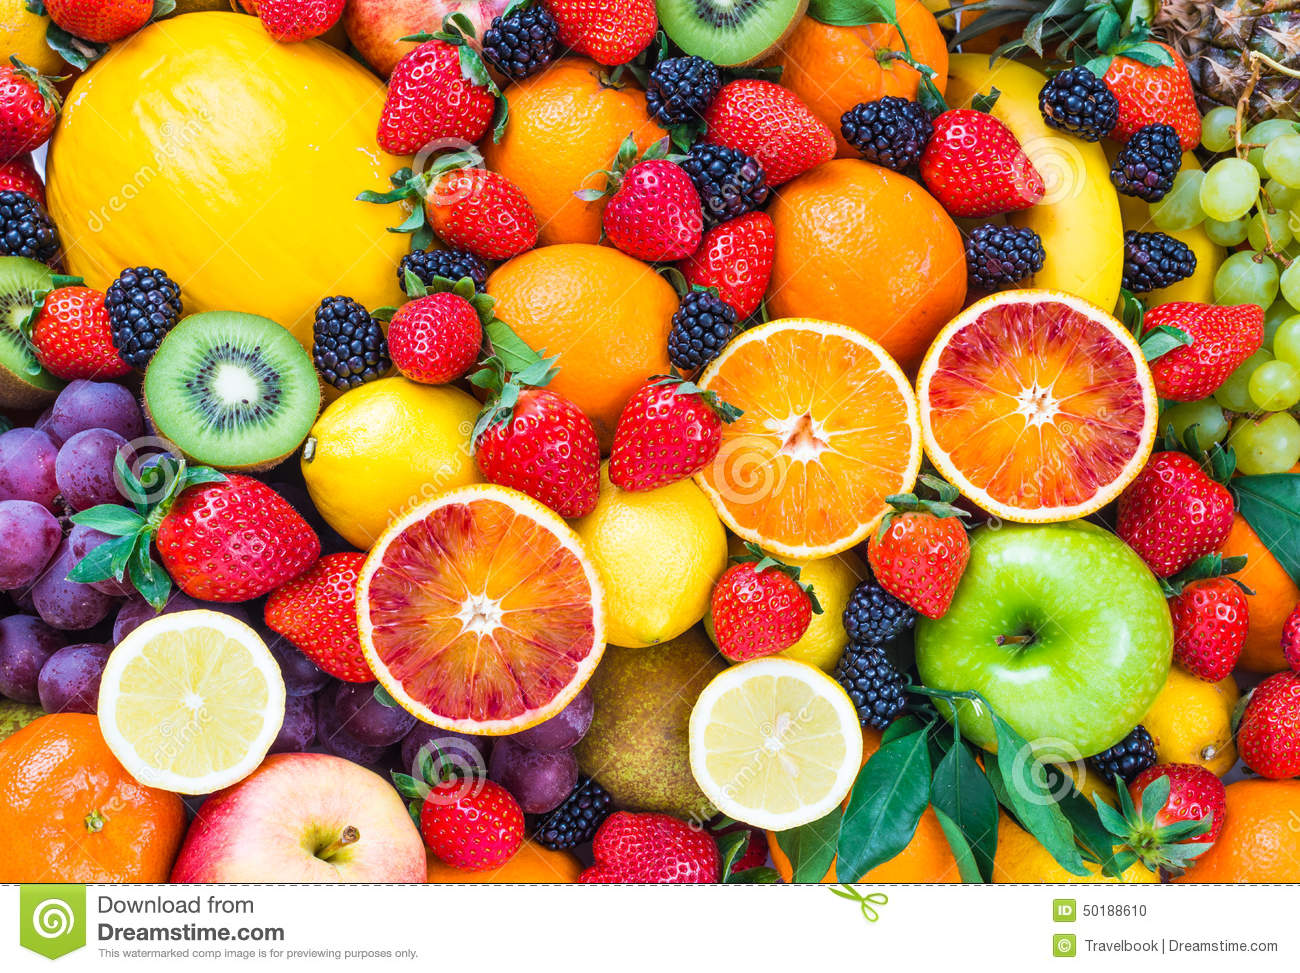 is fruit healthy for you mr fruit